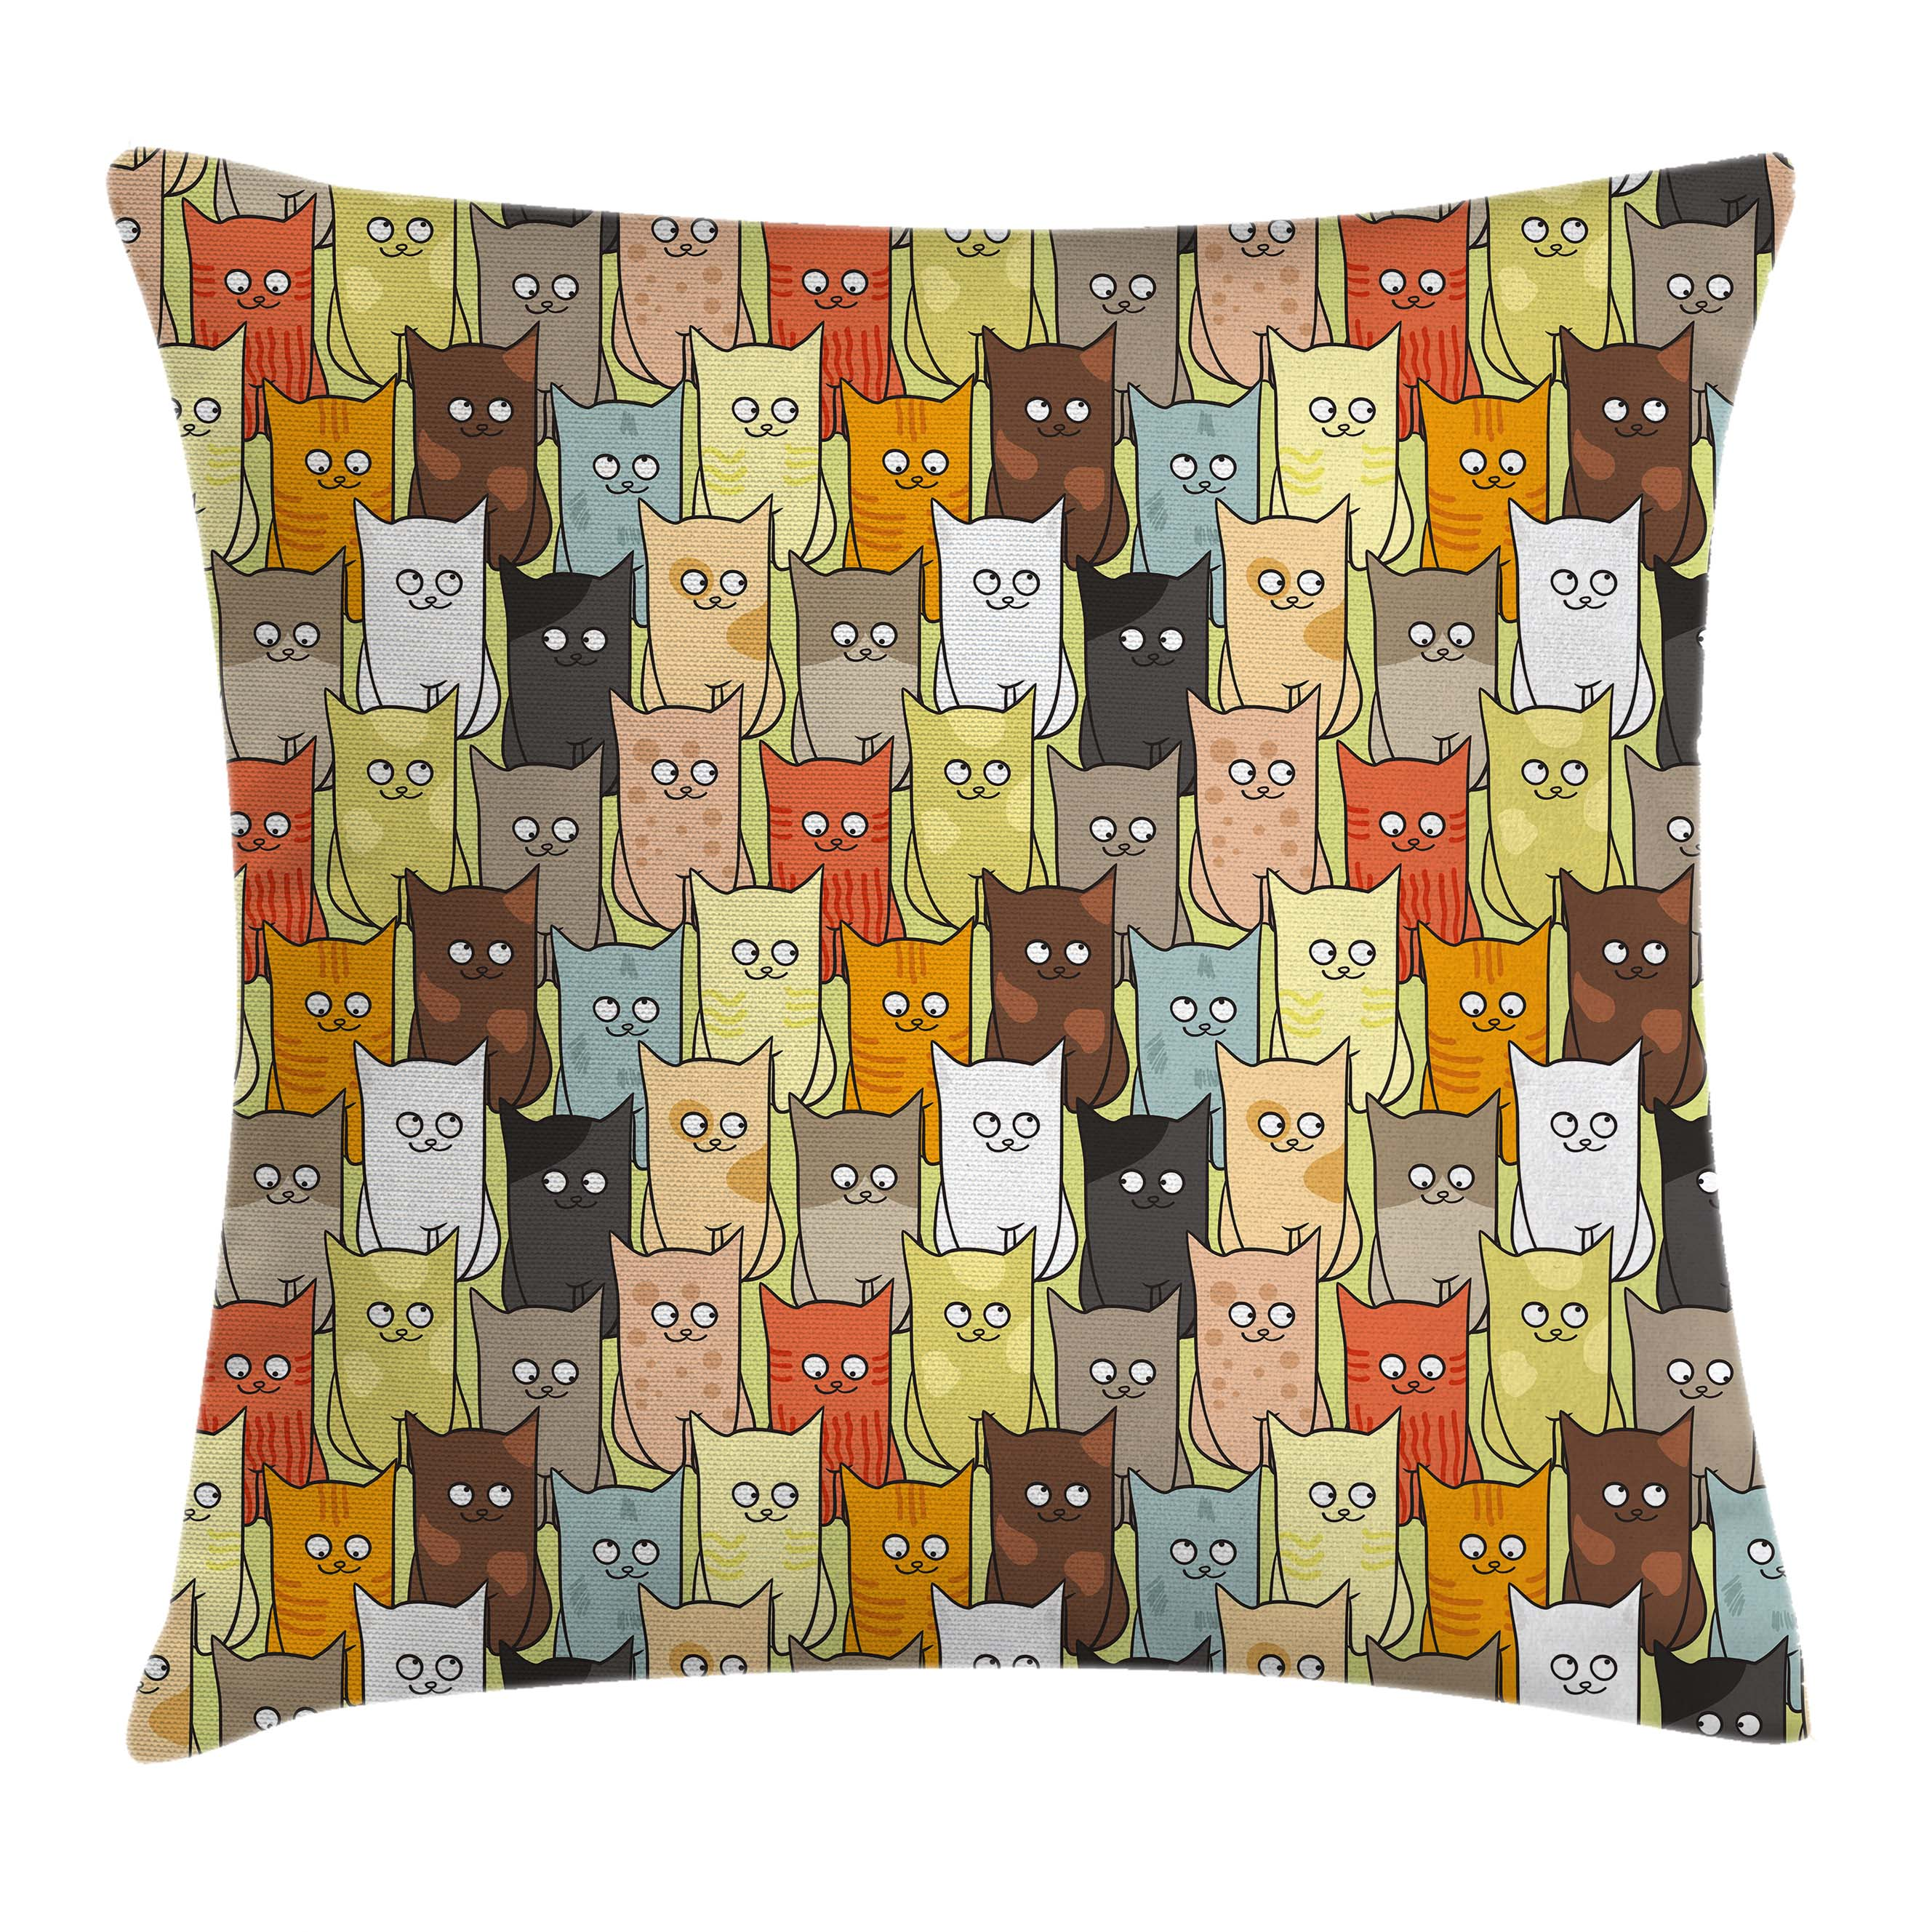 Cats Throw Pillow Cushion Cover, Funny Cute Colorful Graphic Kittens Cartoon Style Boys Girls Kids Playroom Nursery, Decorative Square Accent Pillow Case, 20 X 20 Inches, Multicolor, by Ambesonne